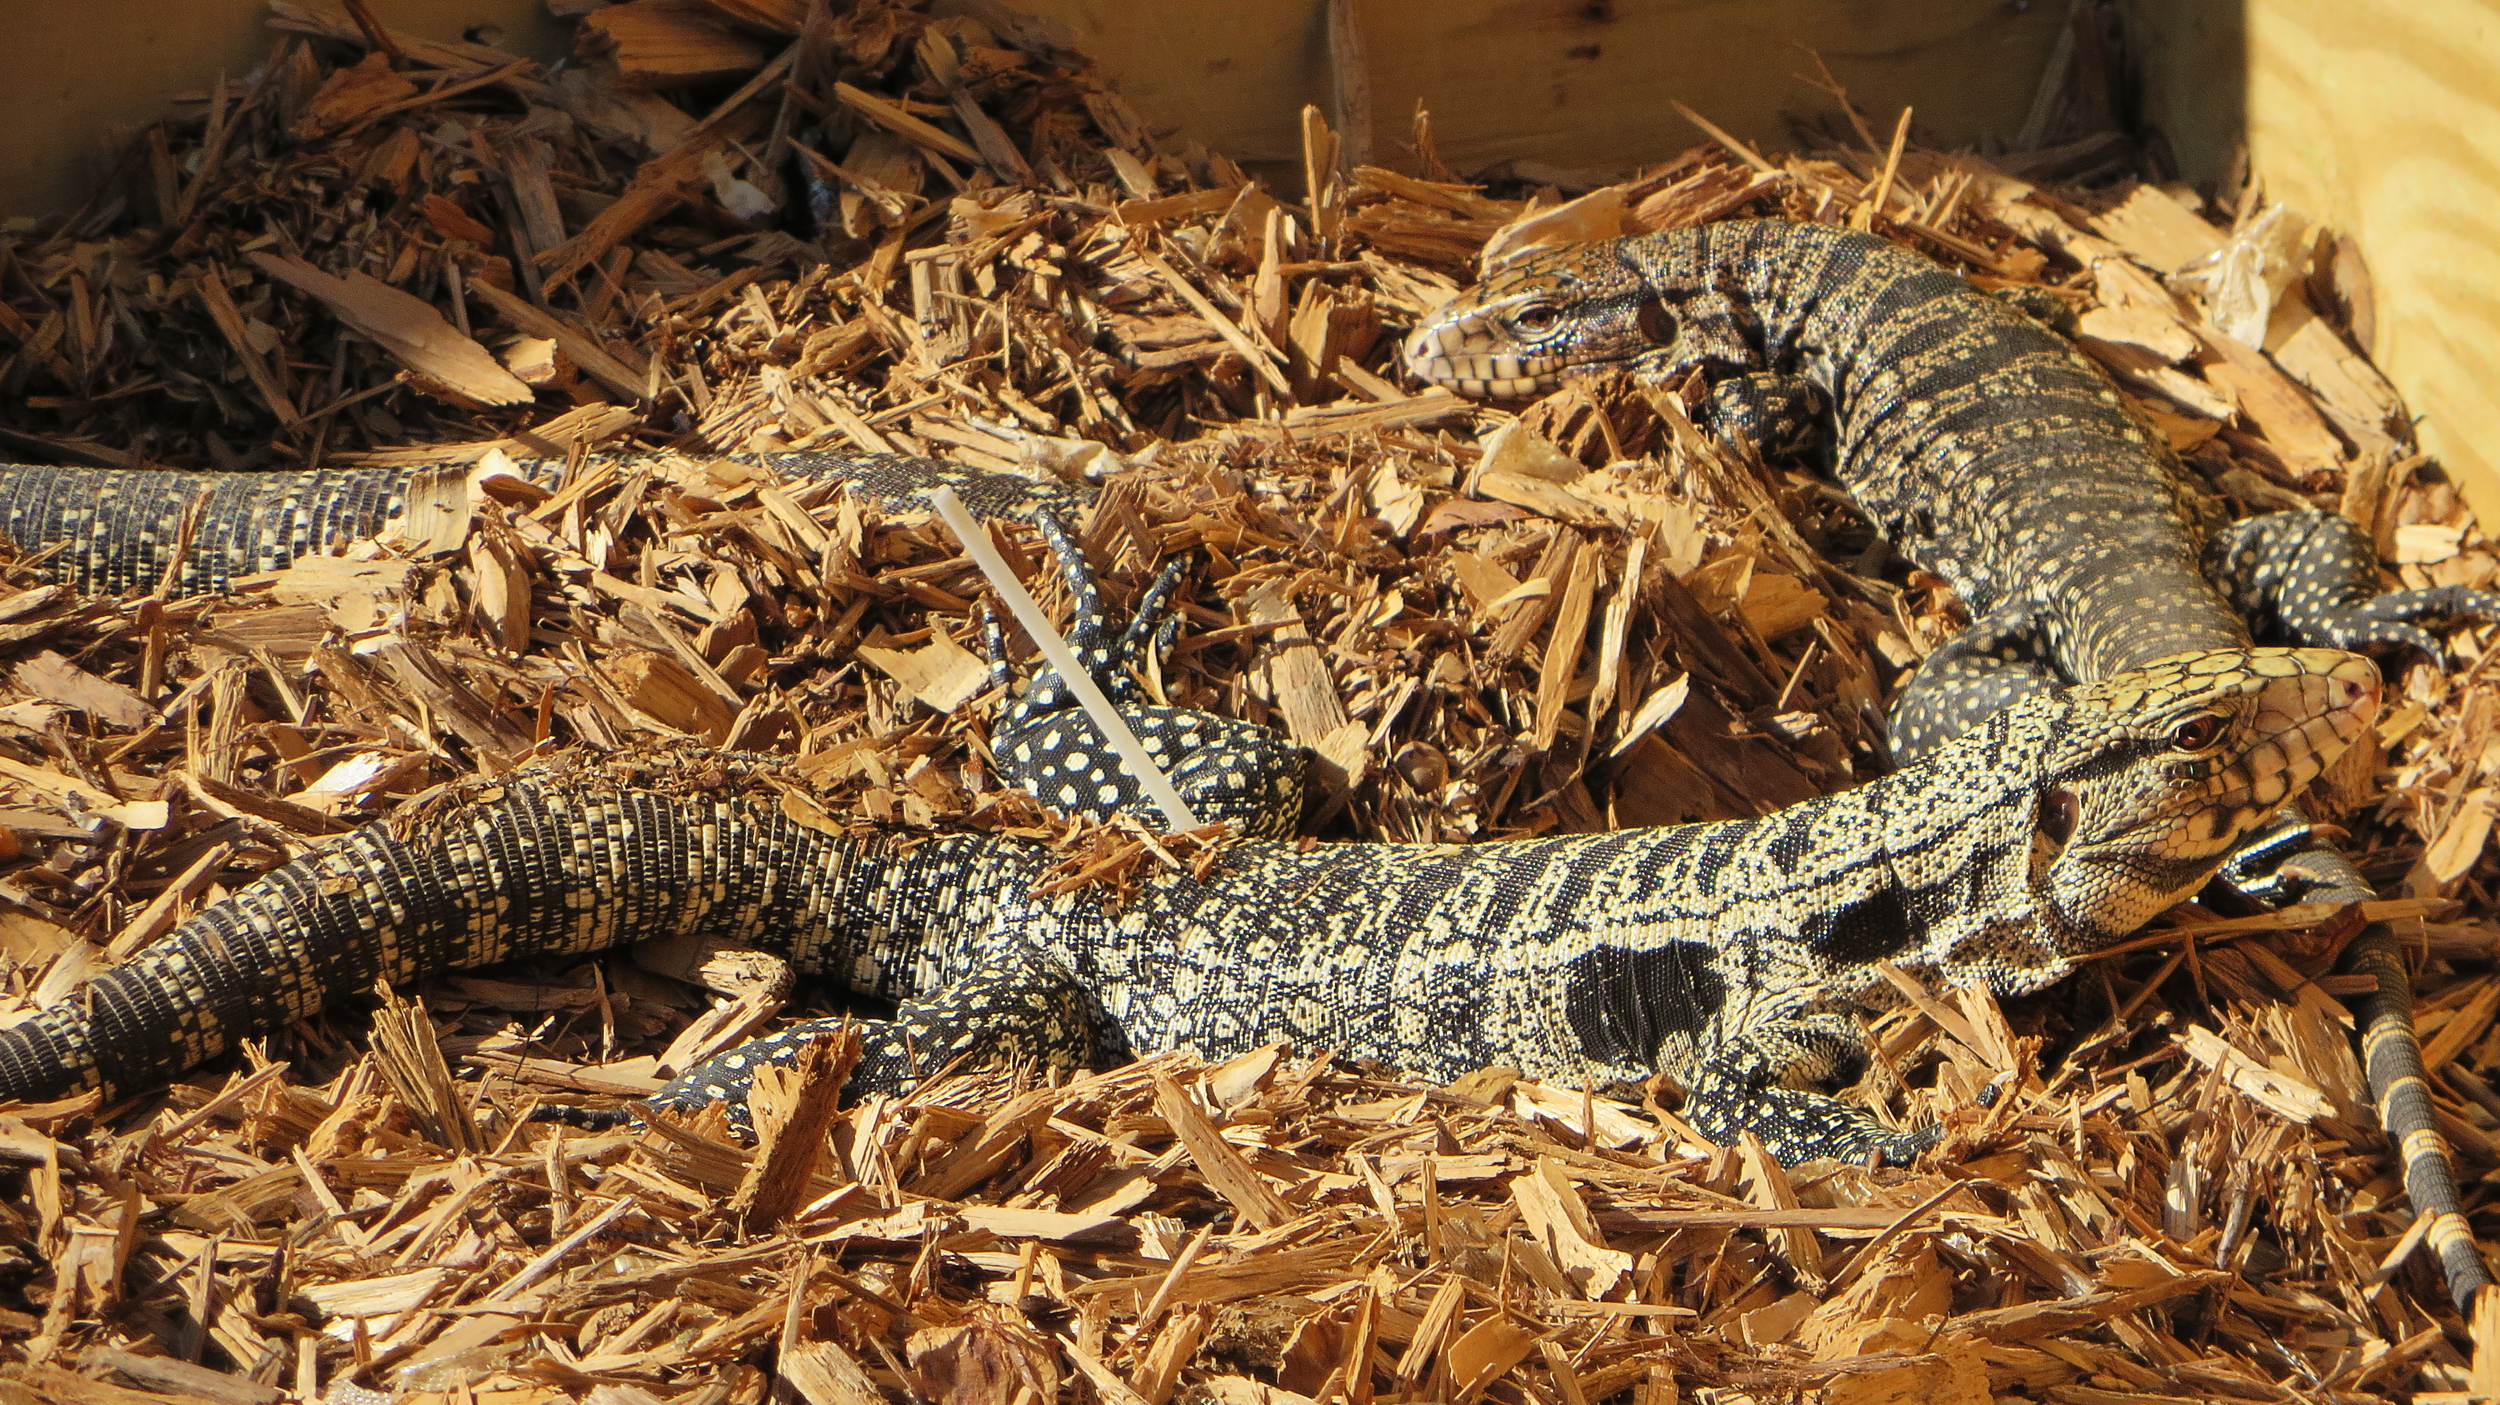 Argentine Black and White Tegu, disowned pets that are now invasive species.jpg